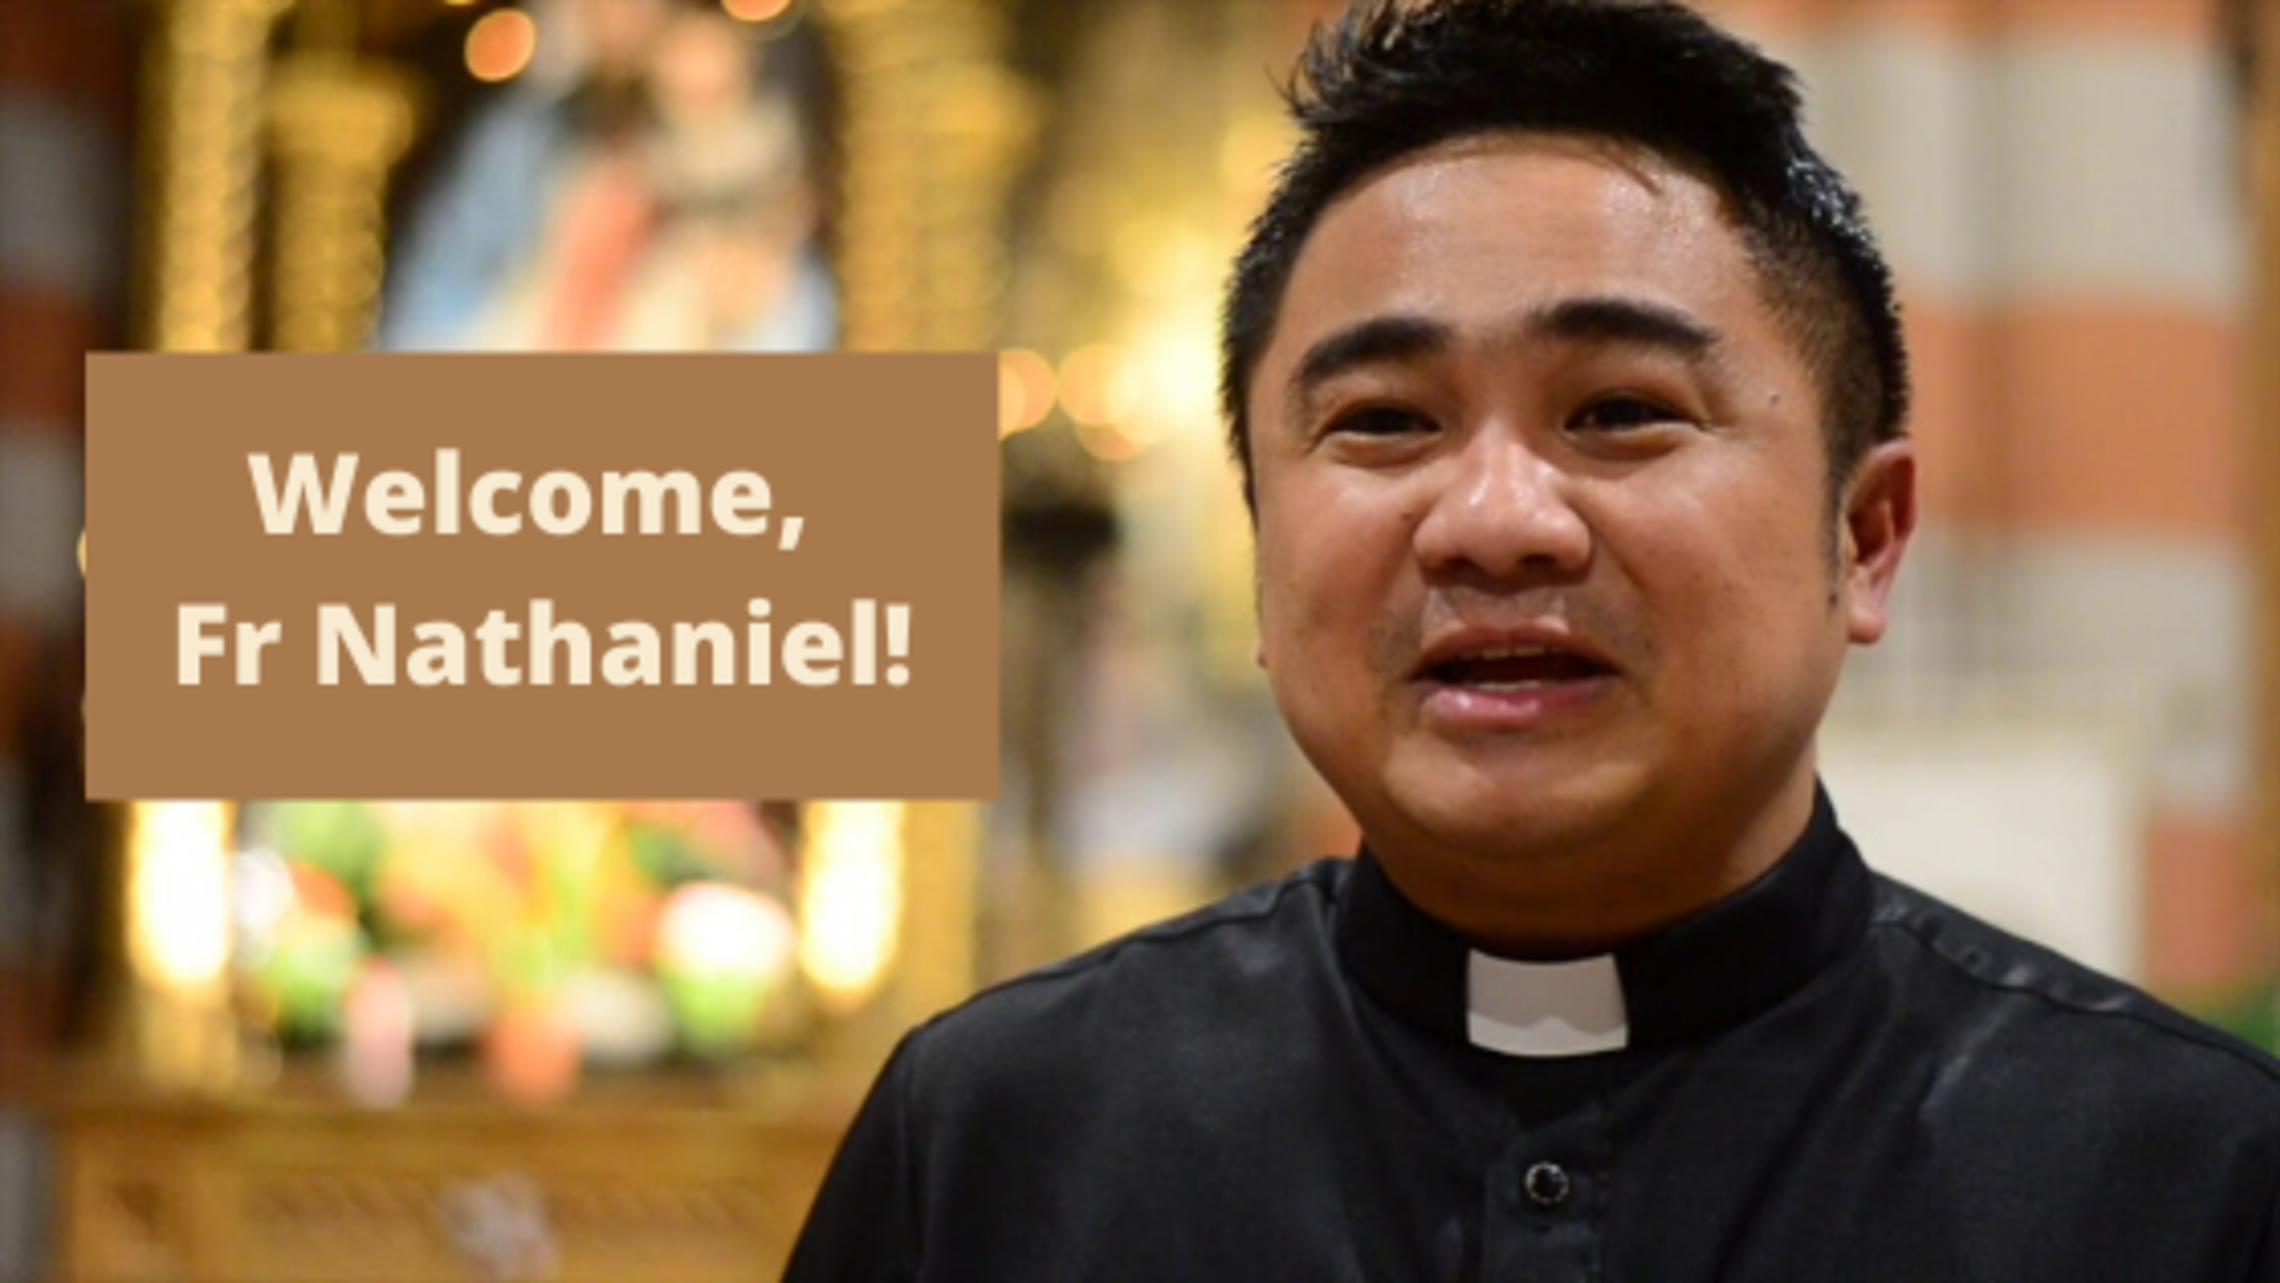 Welcome Fr Nathaniel